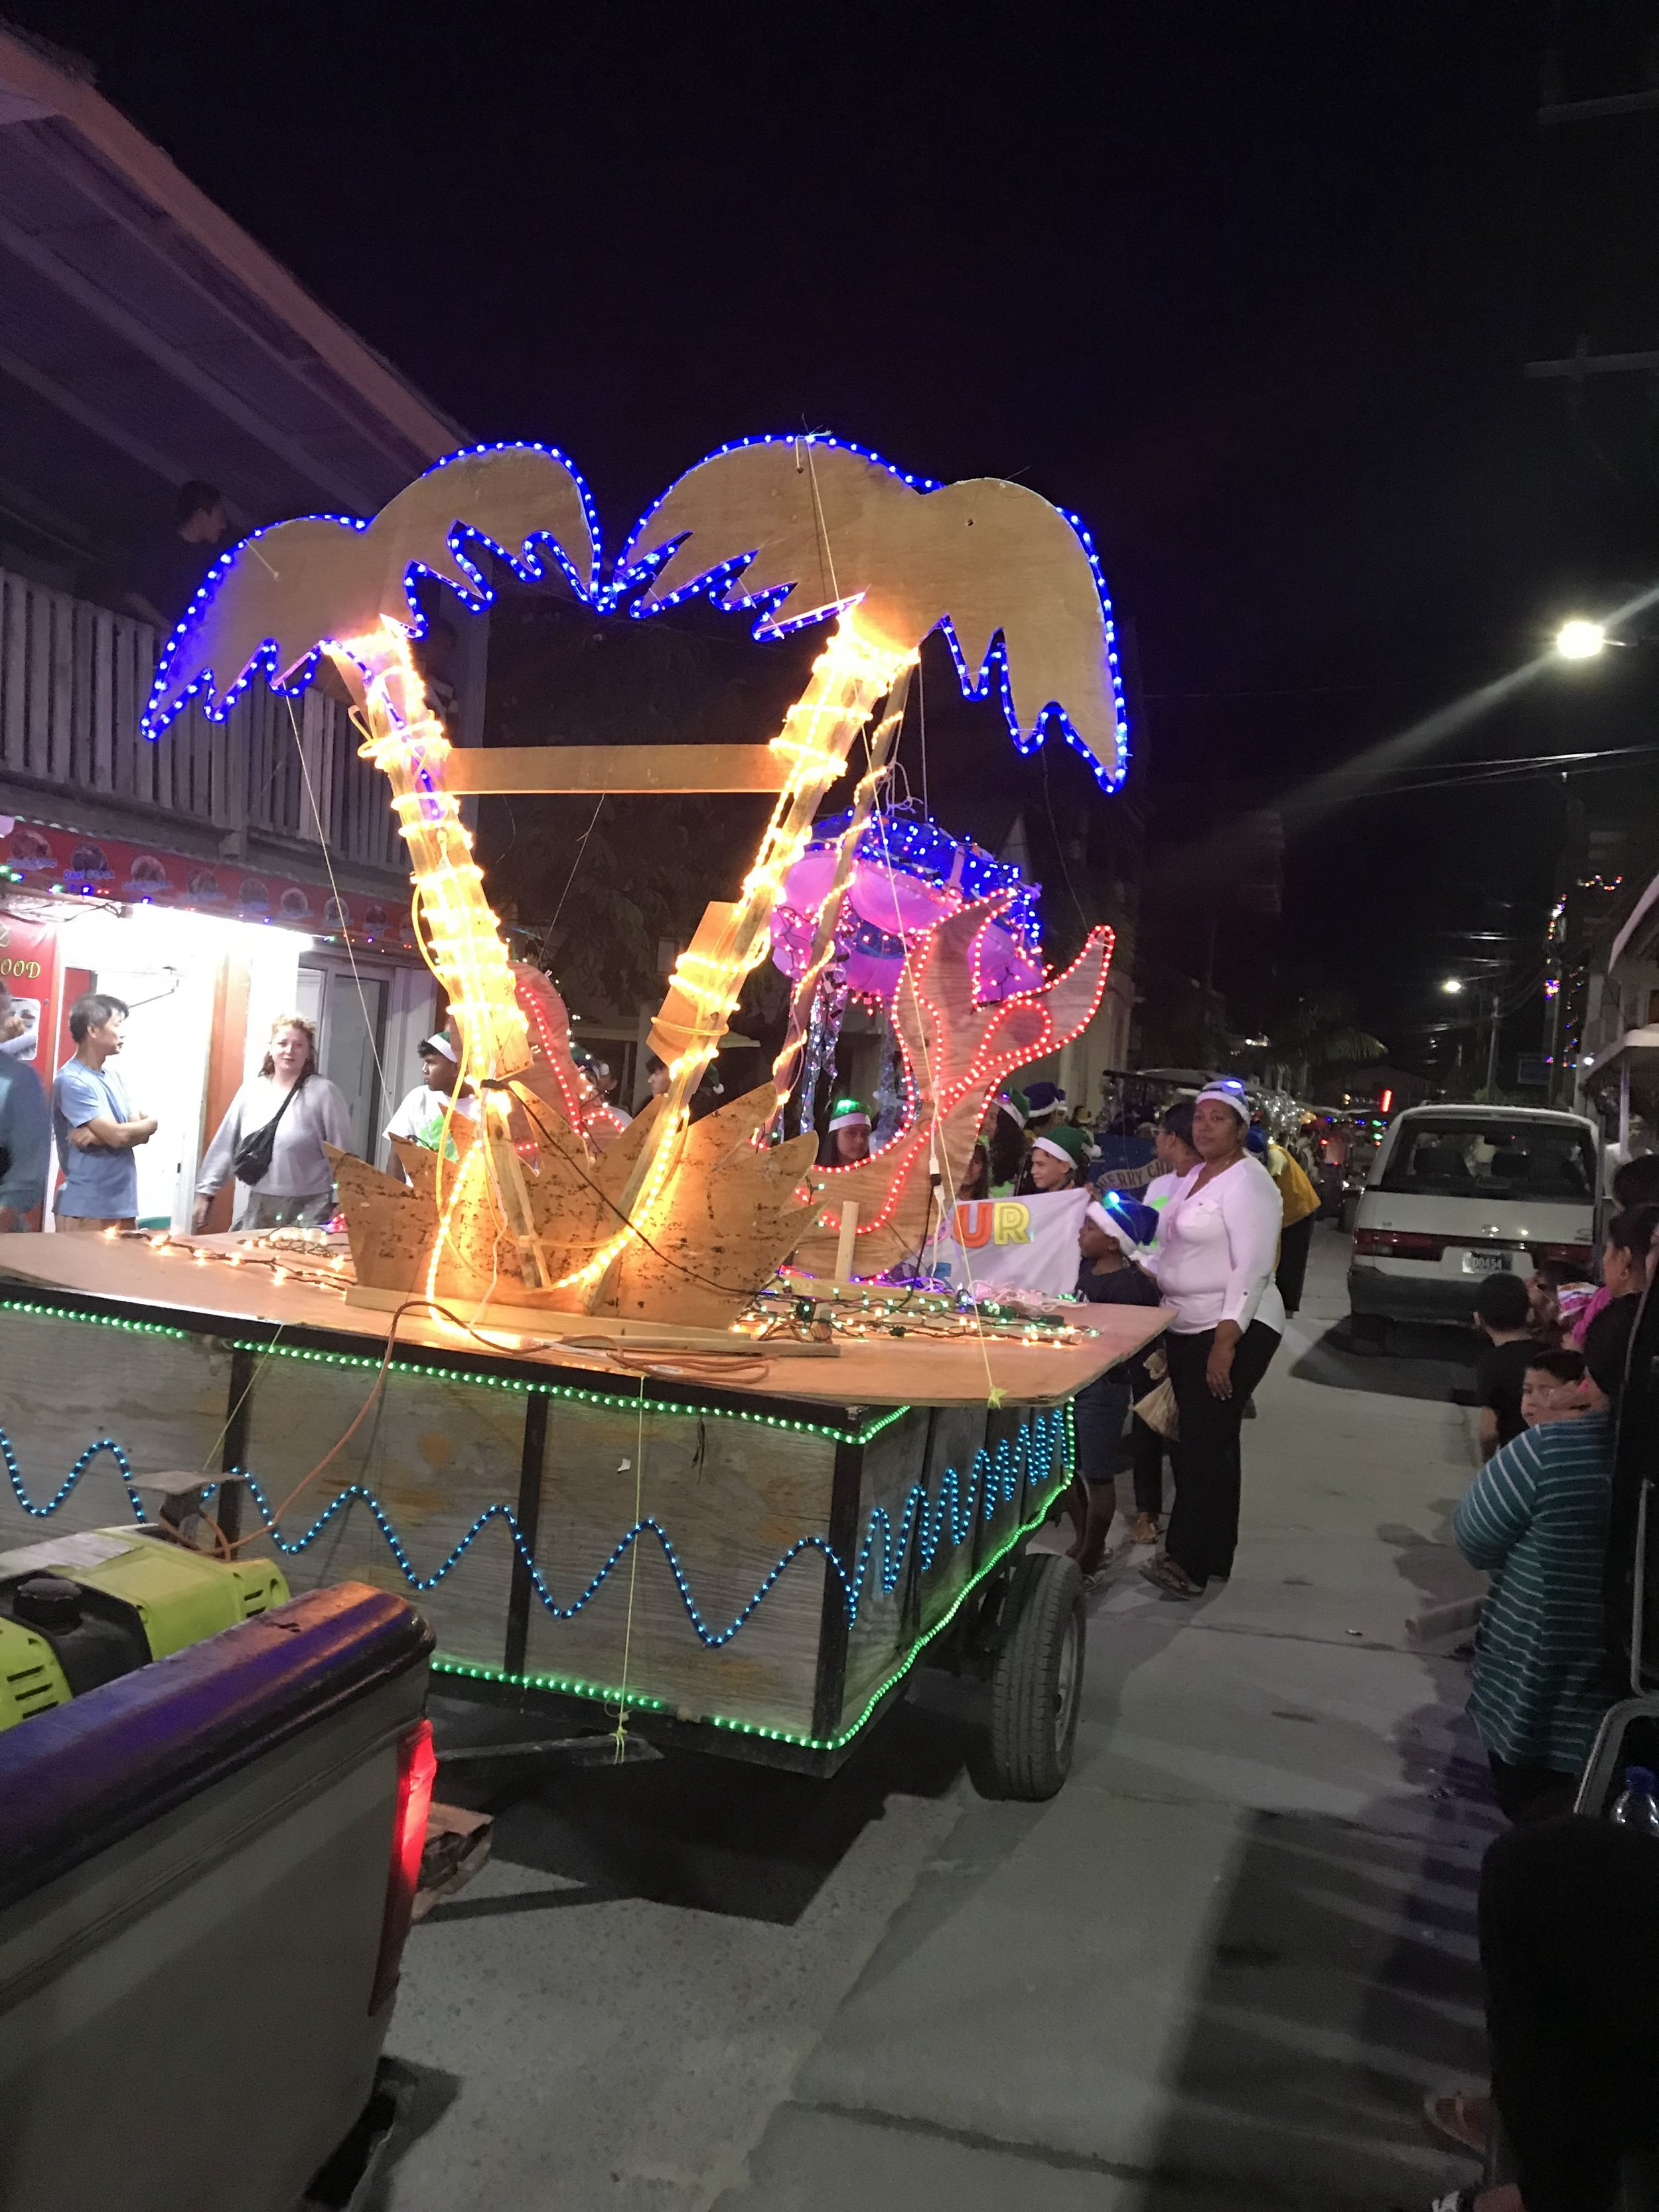 One of the many beautiful, lighted carts in the parade!